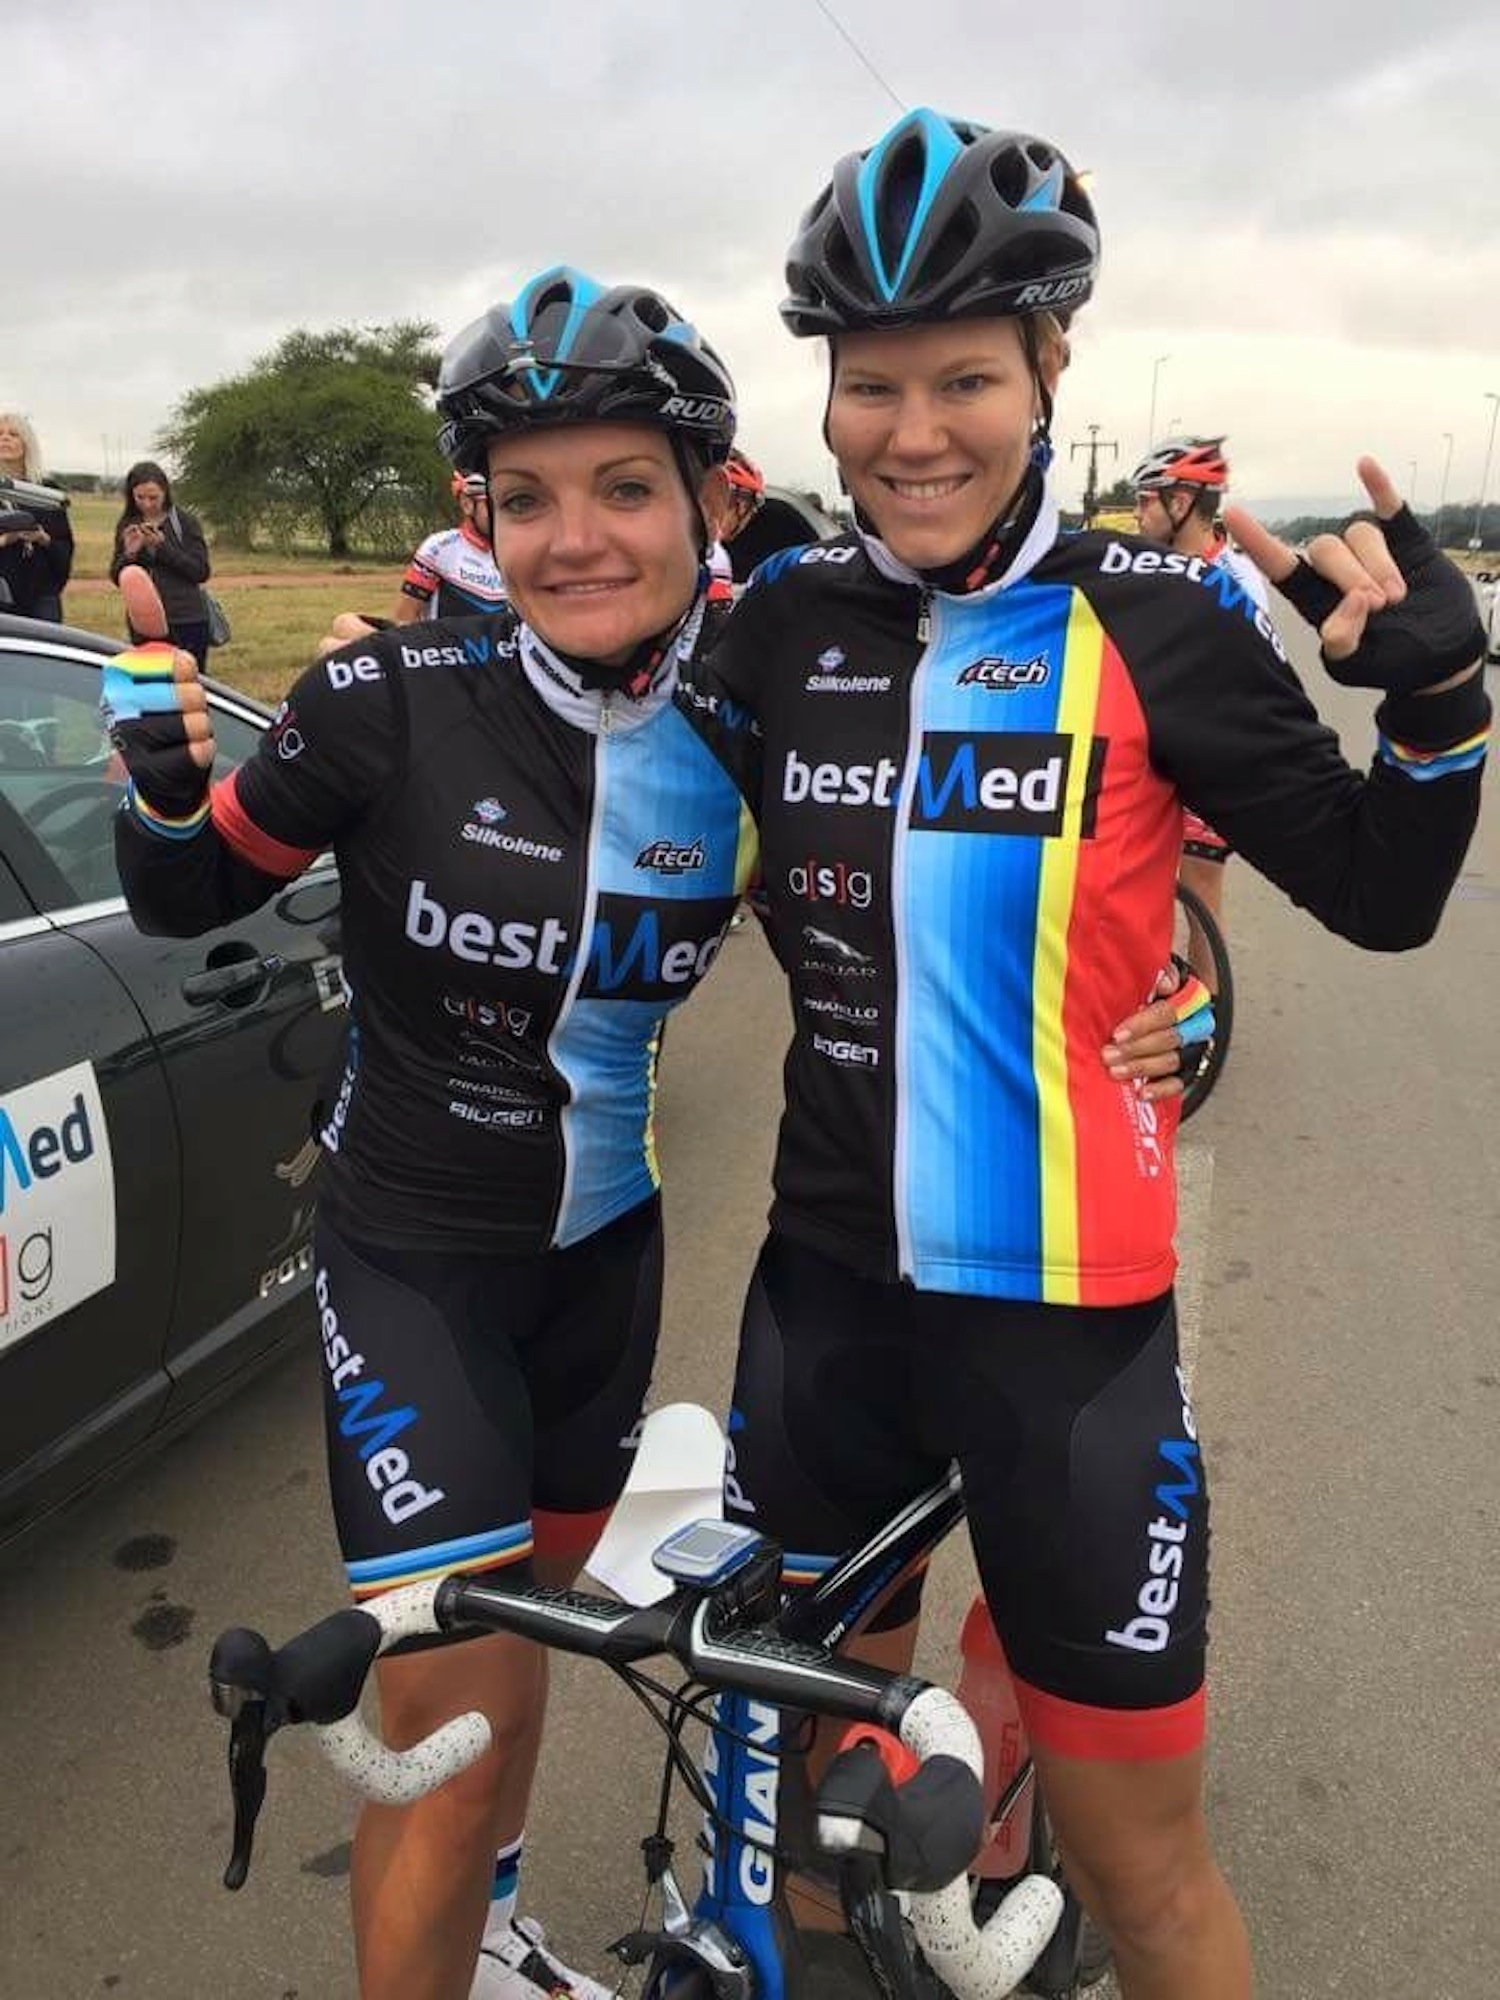 Maroesjka Matthee (right) and team leader Desray Sebregts celebrate Matthee's win at the Polokwane Mayoral Cycle Race in the Limpopo province on Sunday. Photo: Supplied